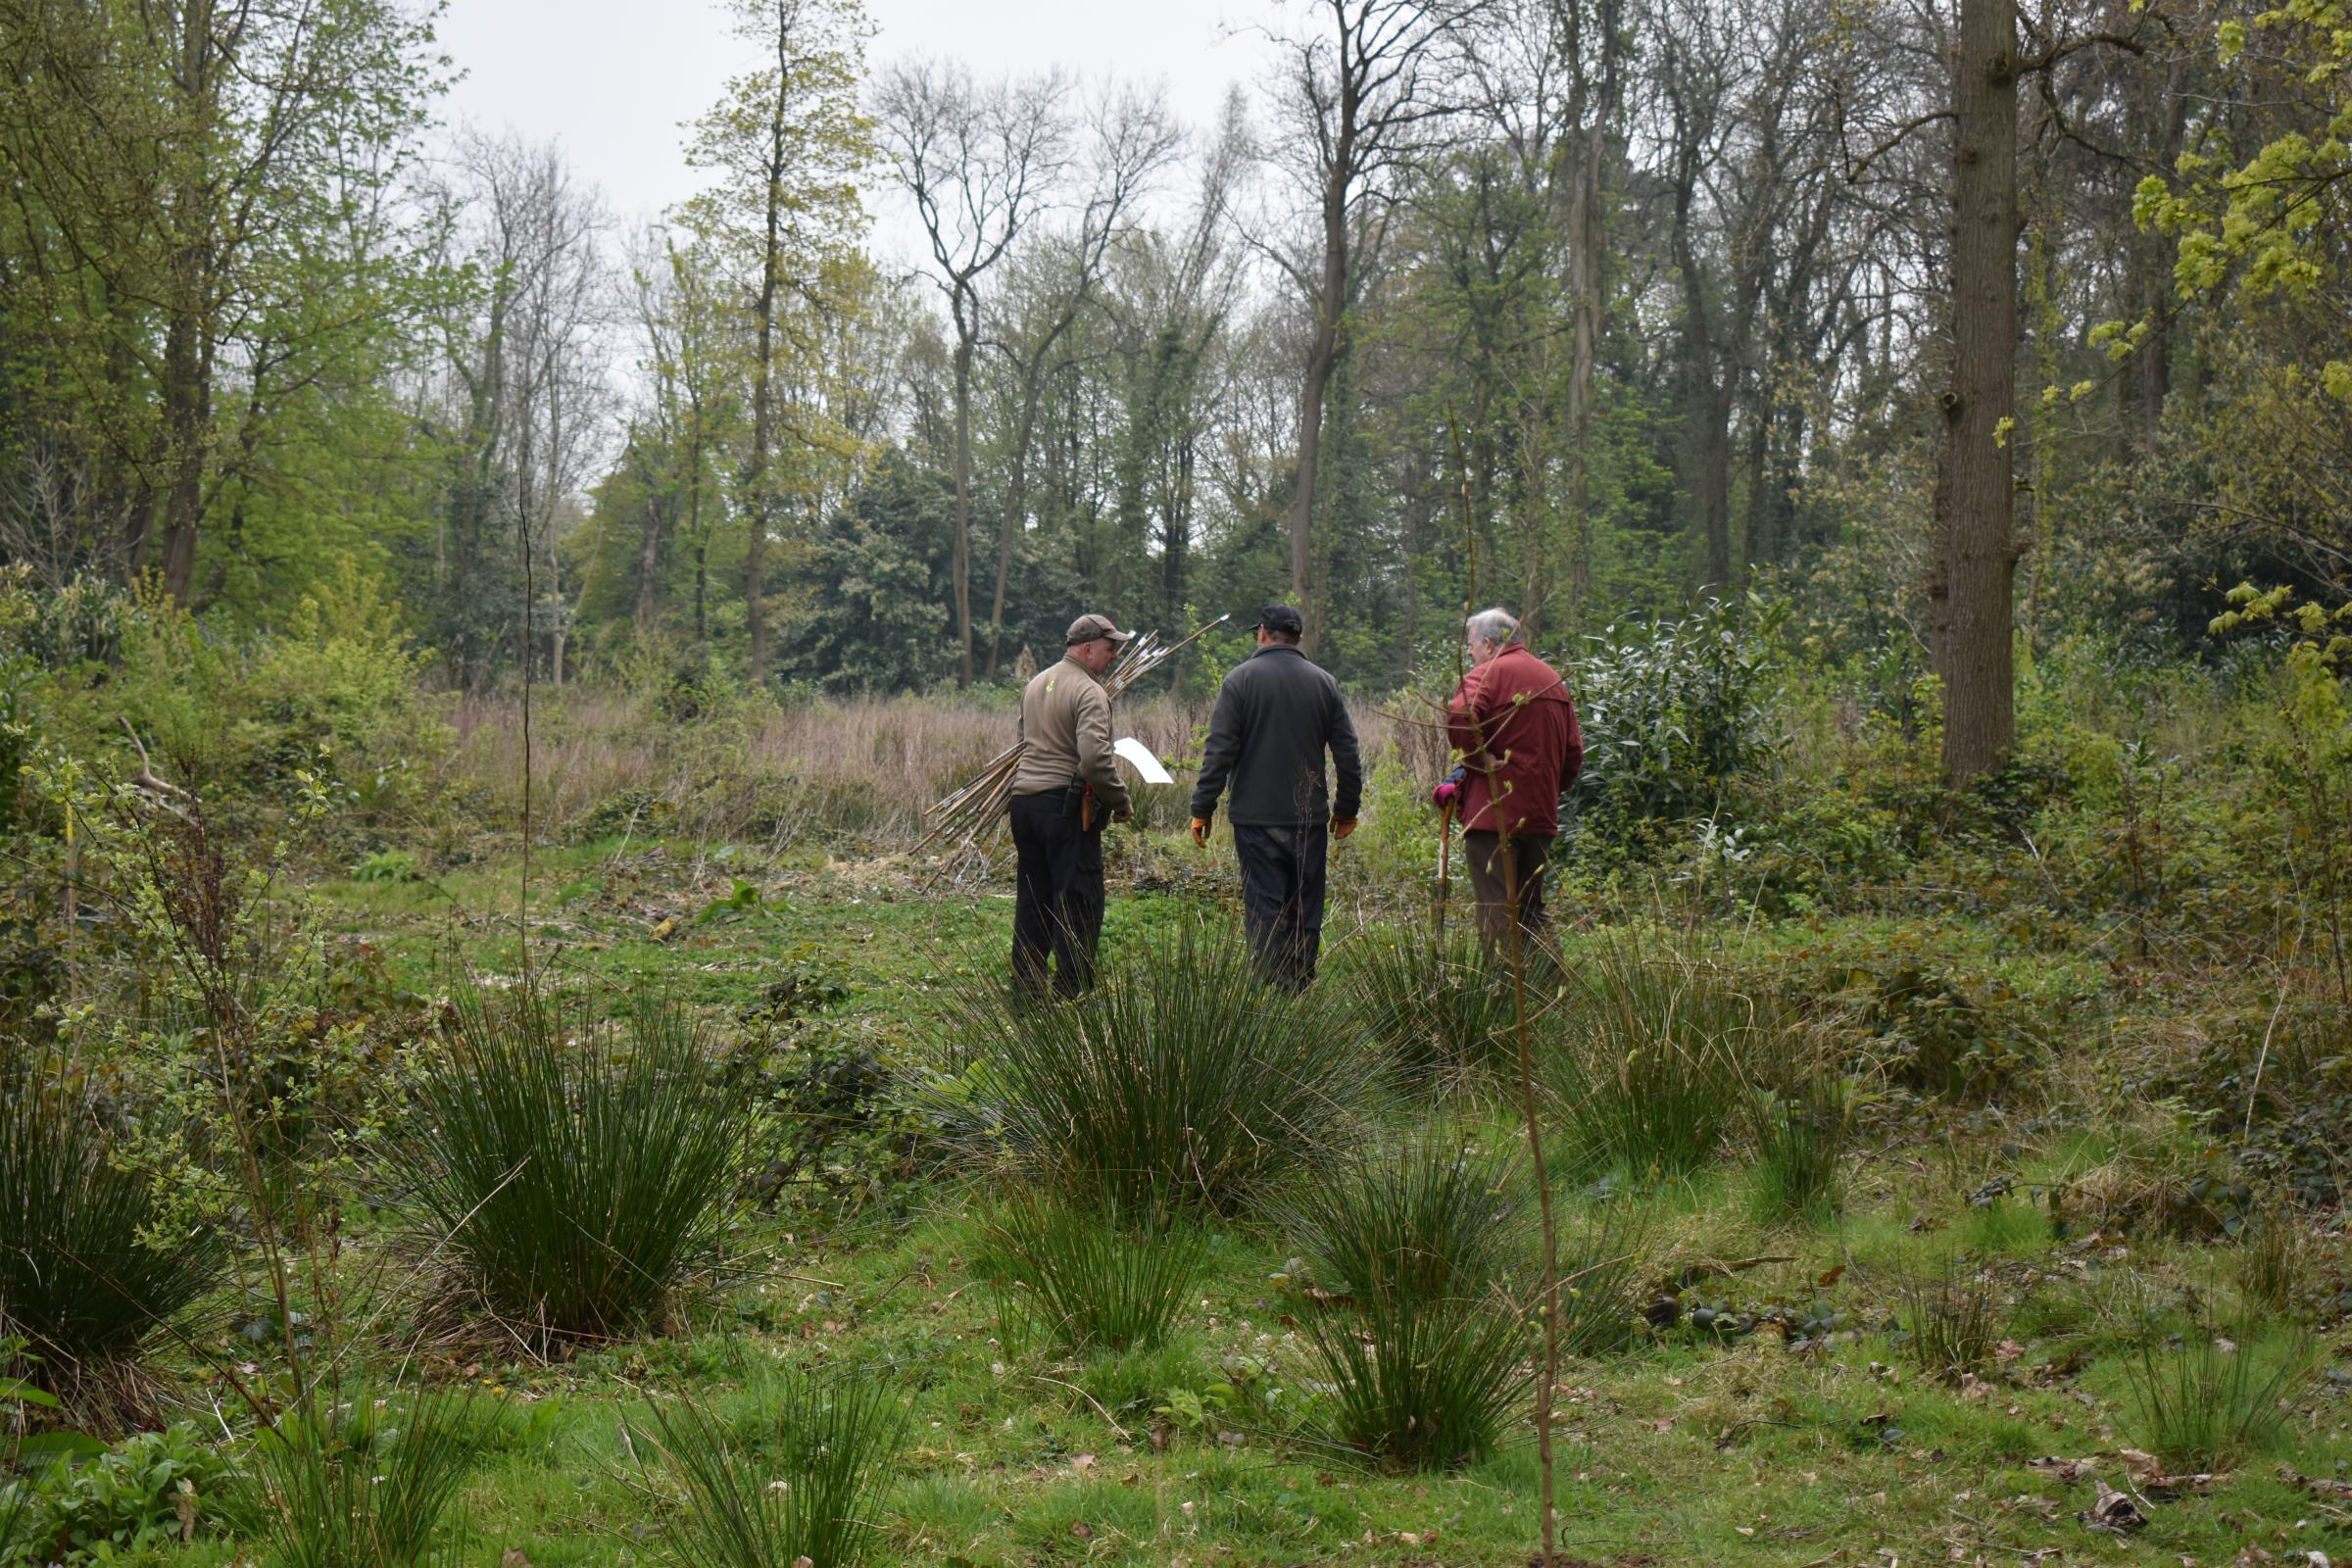 500 trees to be planted in grounds of Tredegar House